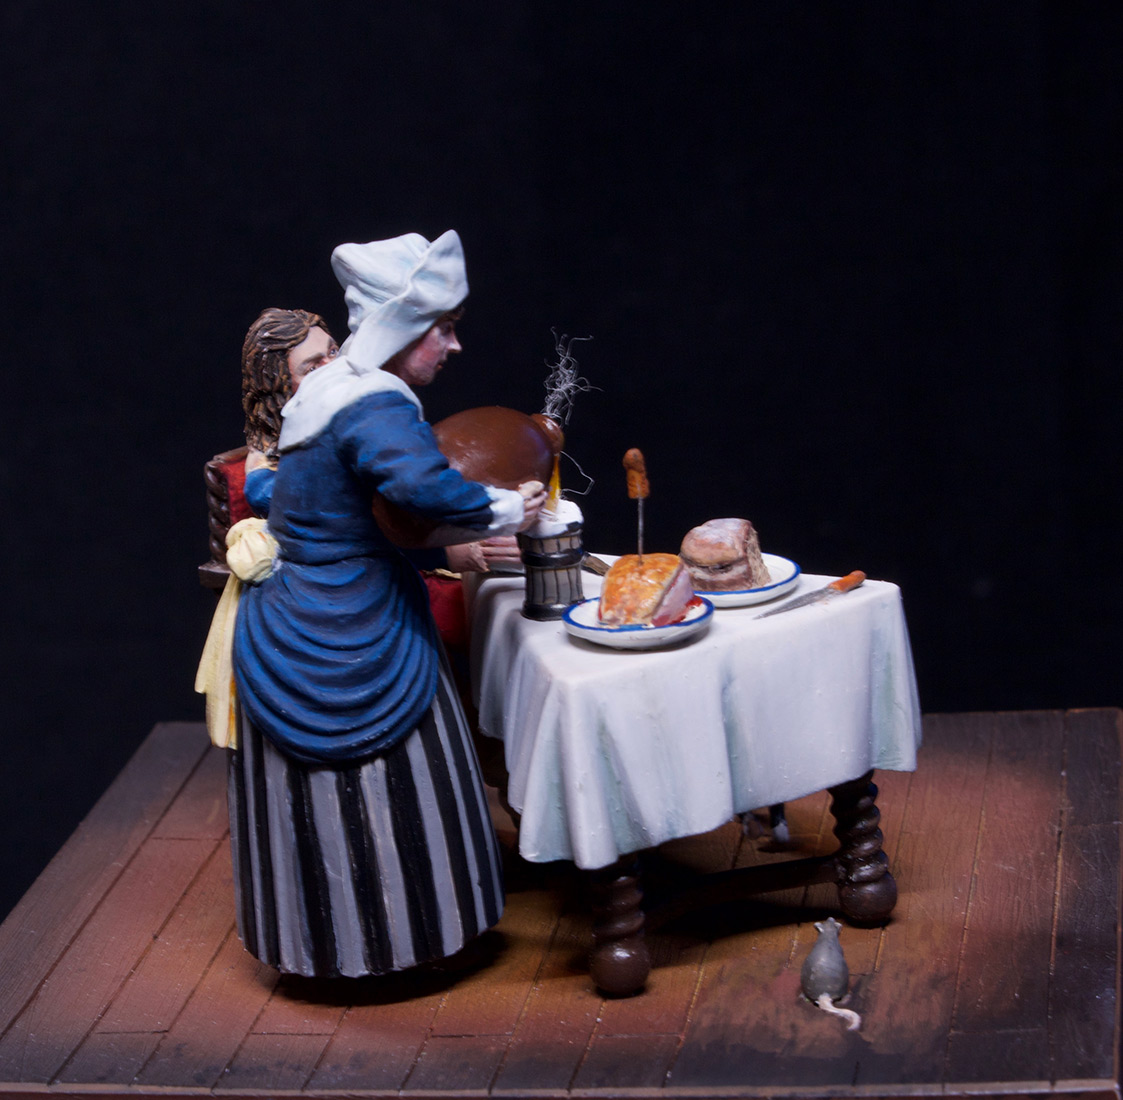 Dioramas and Vignettes: Waitress and cavalier, photo #13